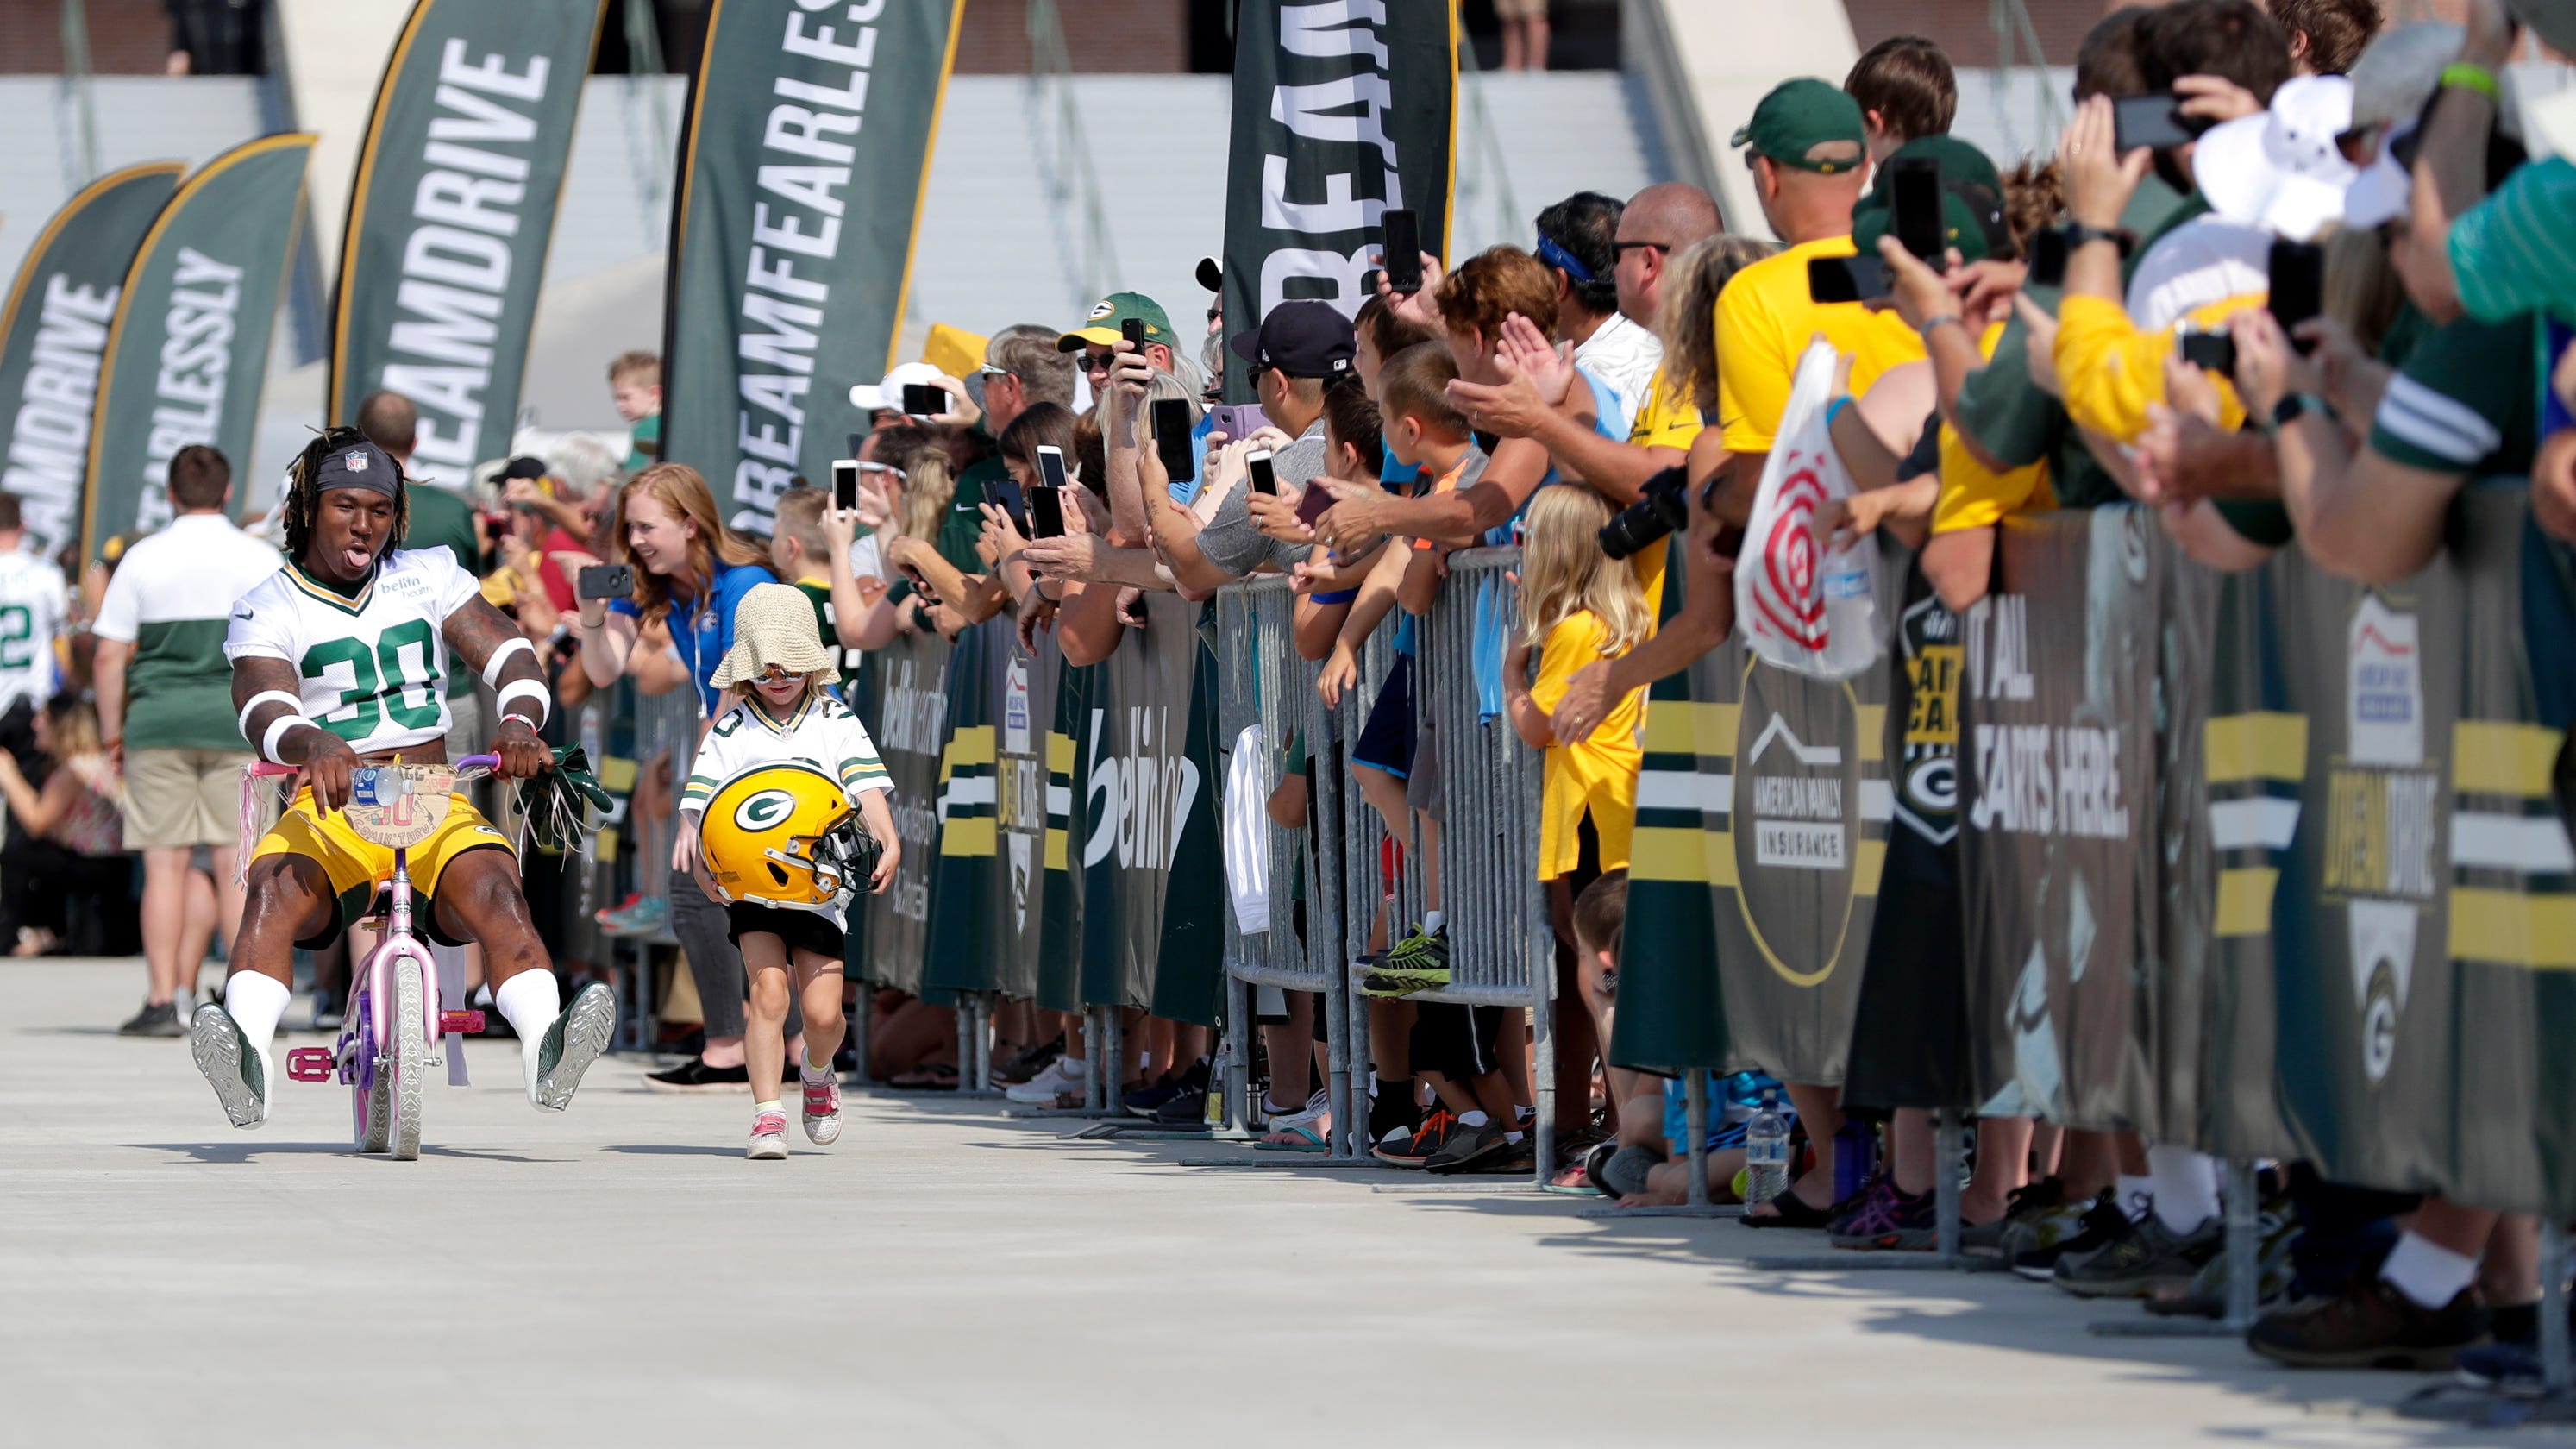 2ff635e1 Green Bay: Training camp bike opportunities double with Texans